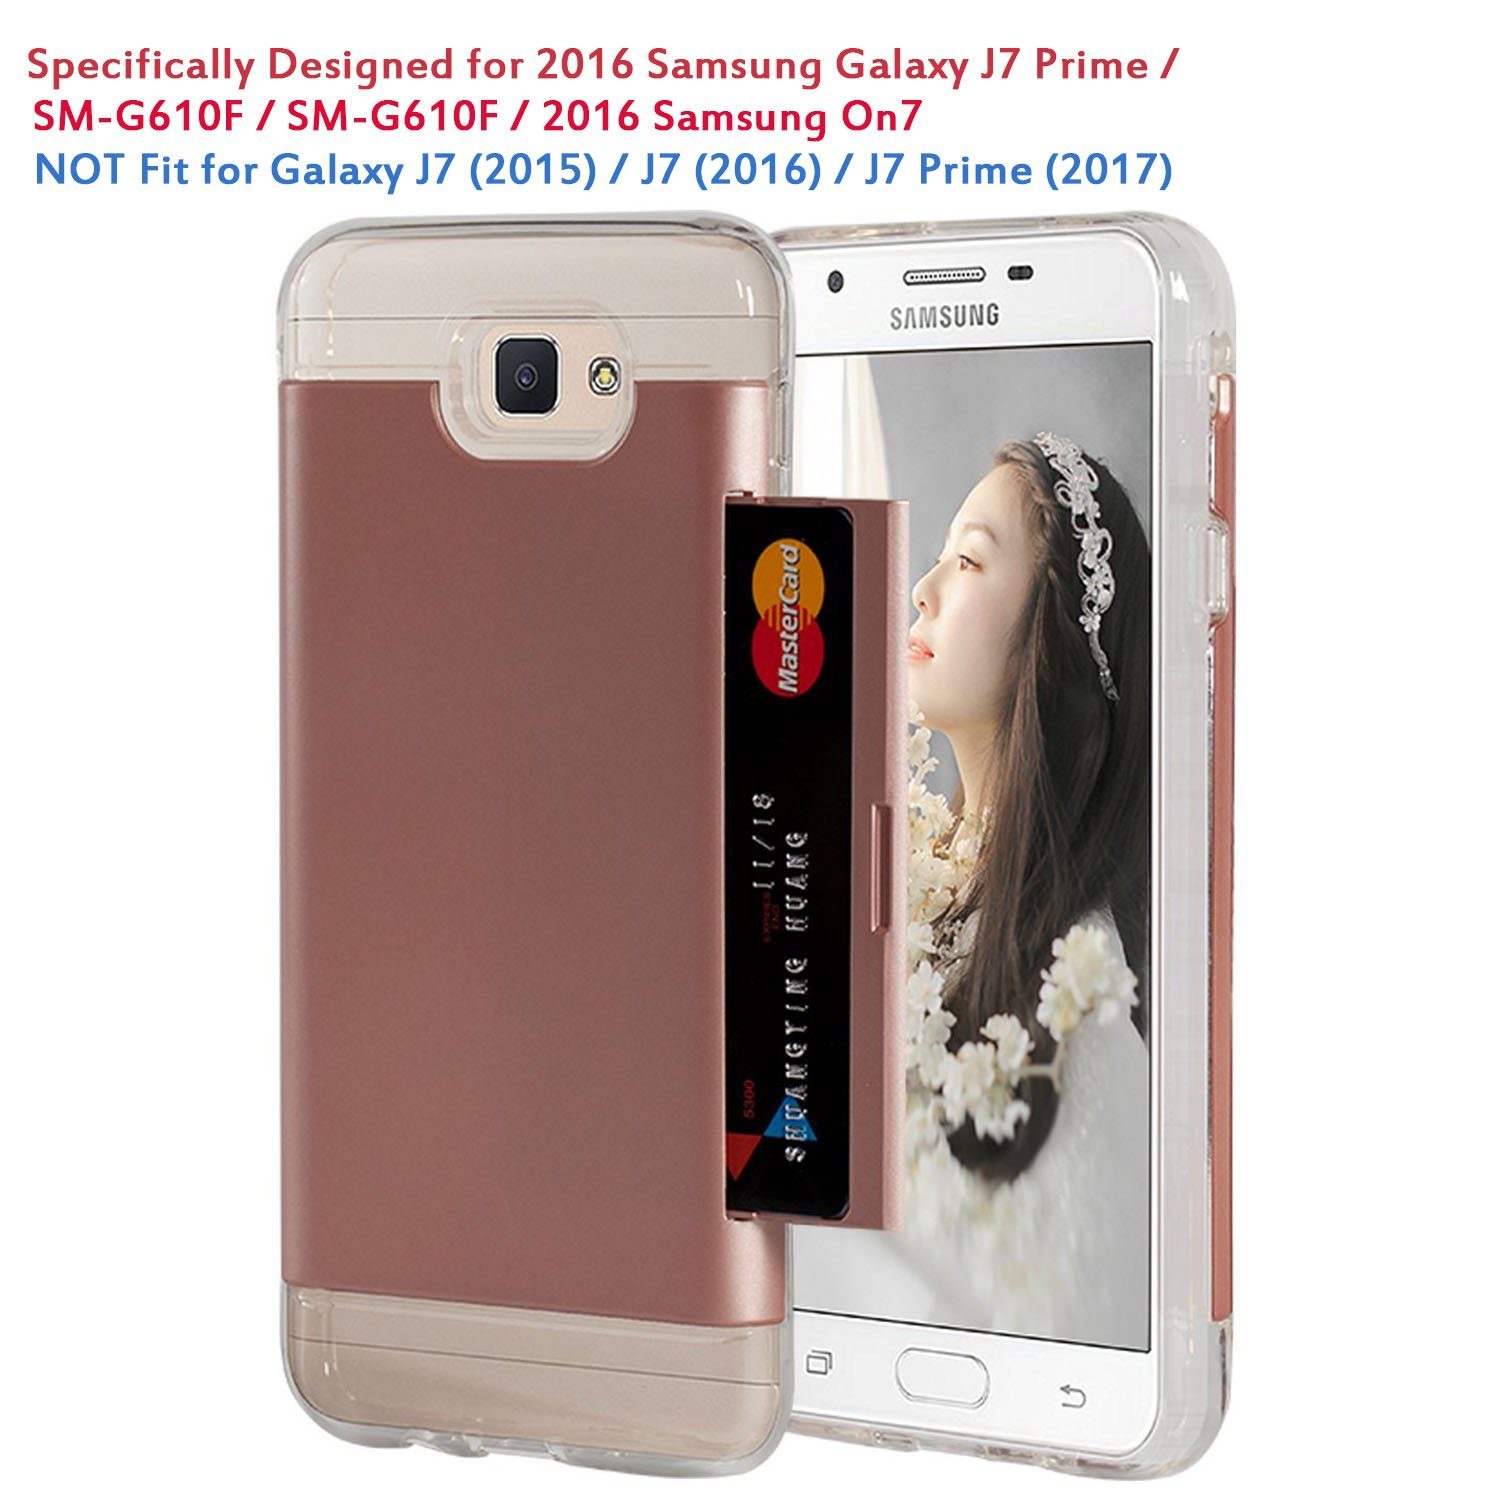 2016 Galaxy J7 Prime Wallet Casespsun With Card Credit Samsung Sm G610f Holder Slot Protective Cover Case For Released On7